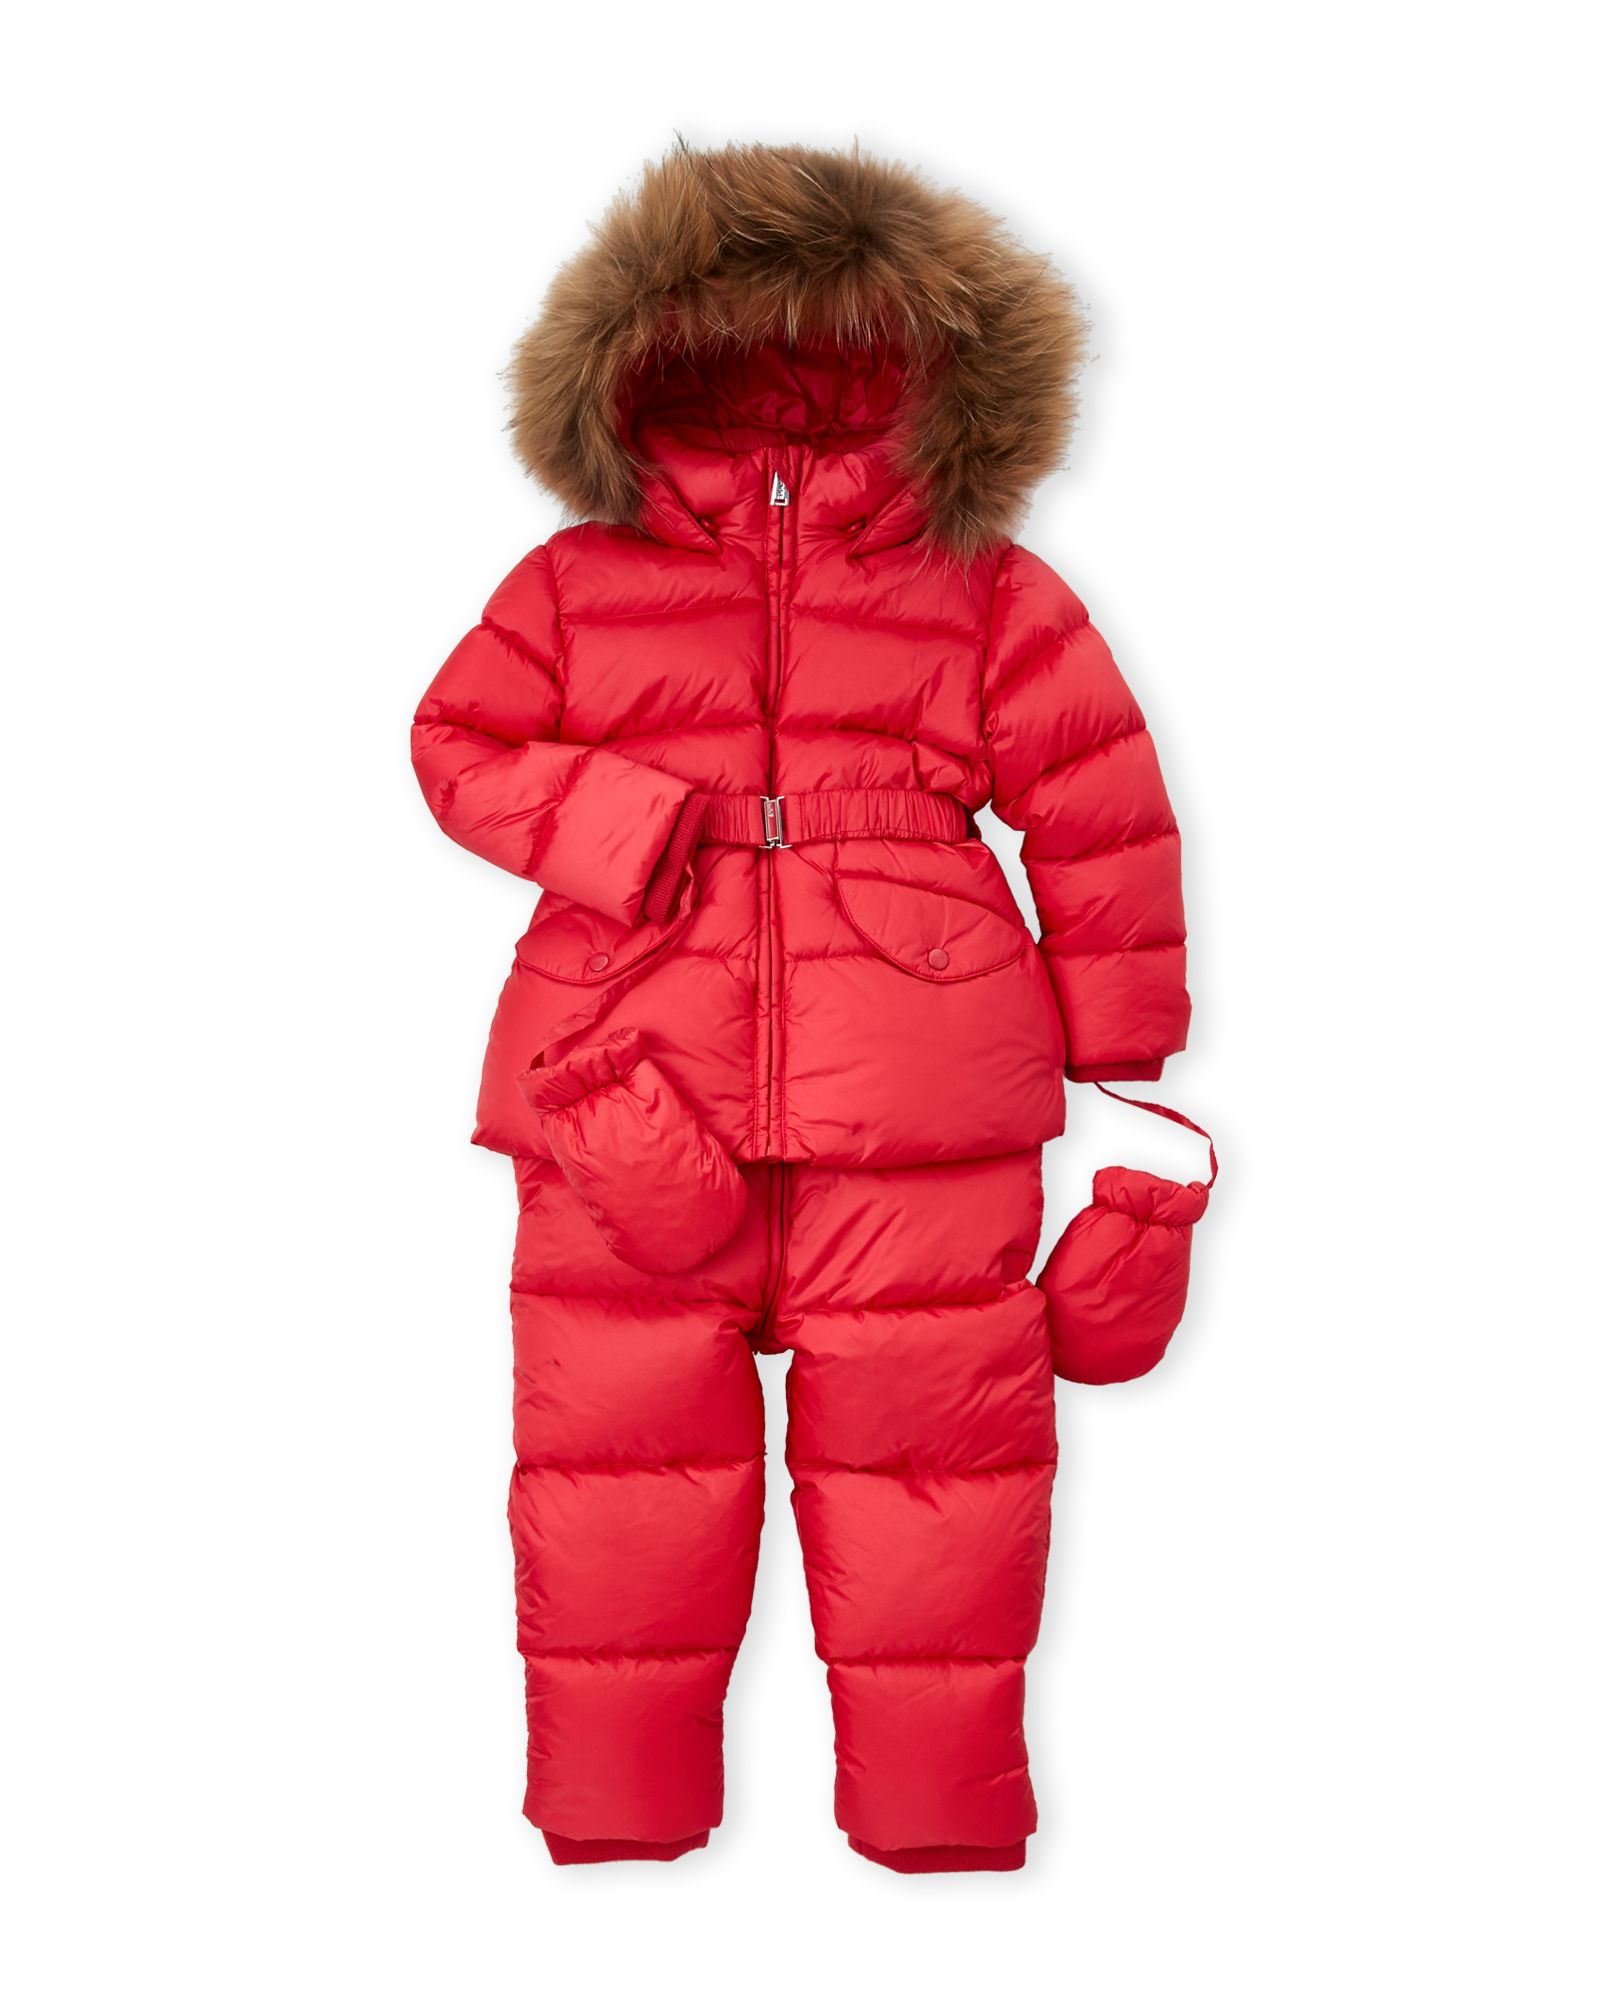 2344941cb056 Toddler Girls) Two-Piece Real Fur Trim Quilted Down Jacket ...